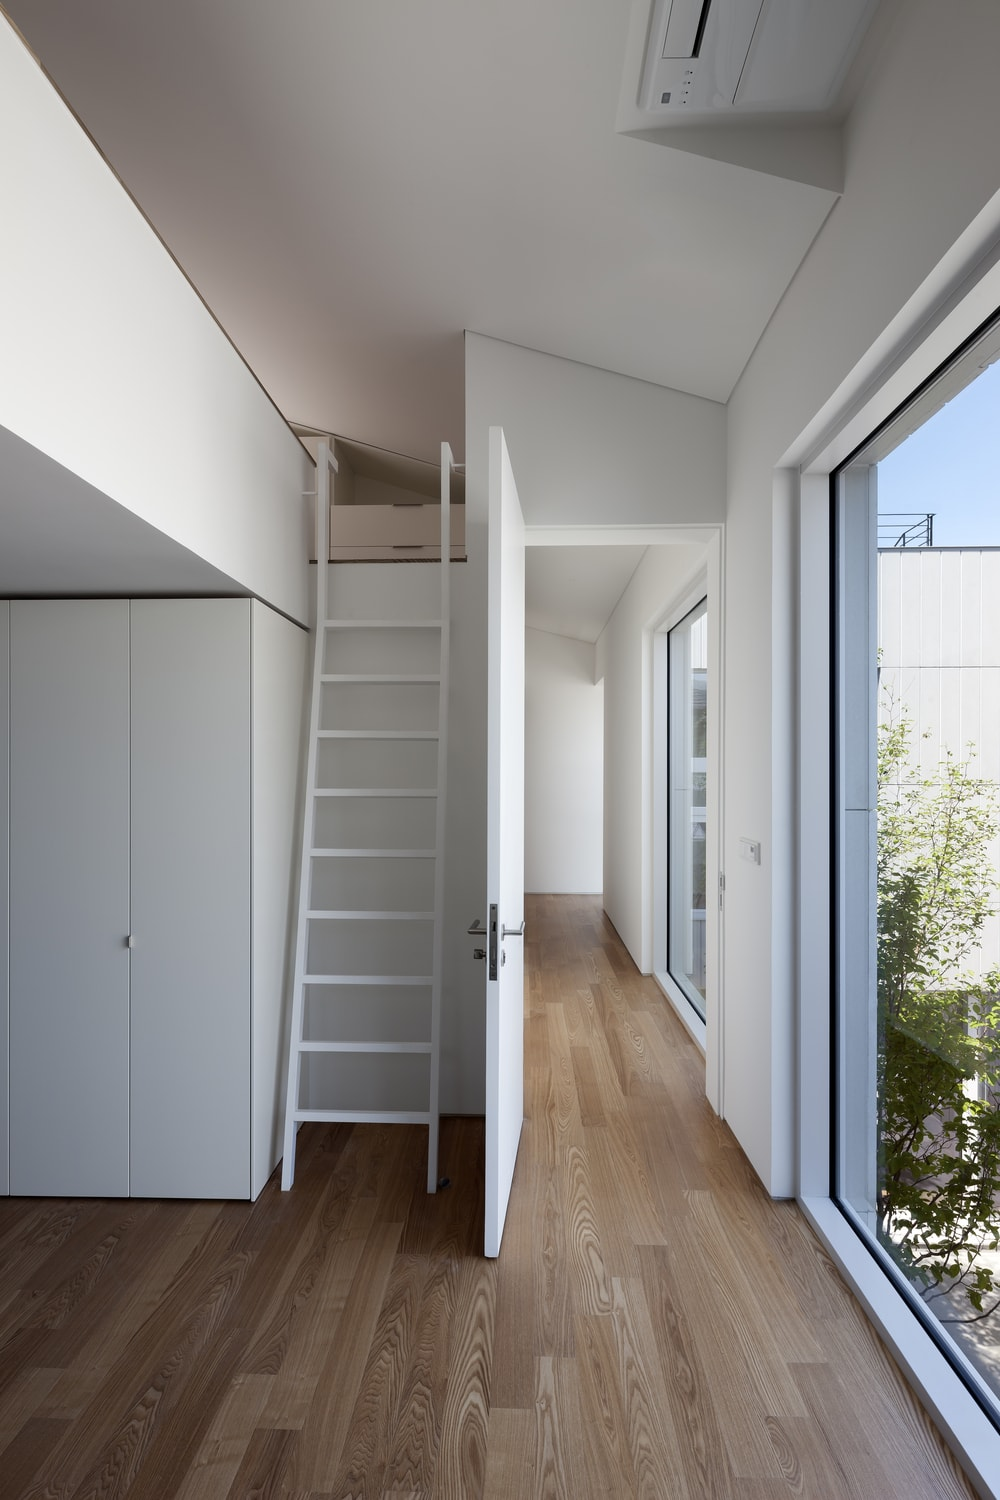 This is a corner of the house that has a ladder to access the upper level of the house with a low ceiling that matches the walls.